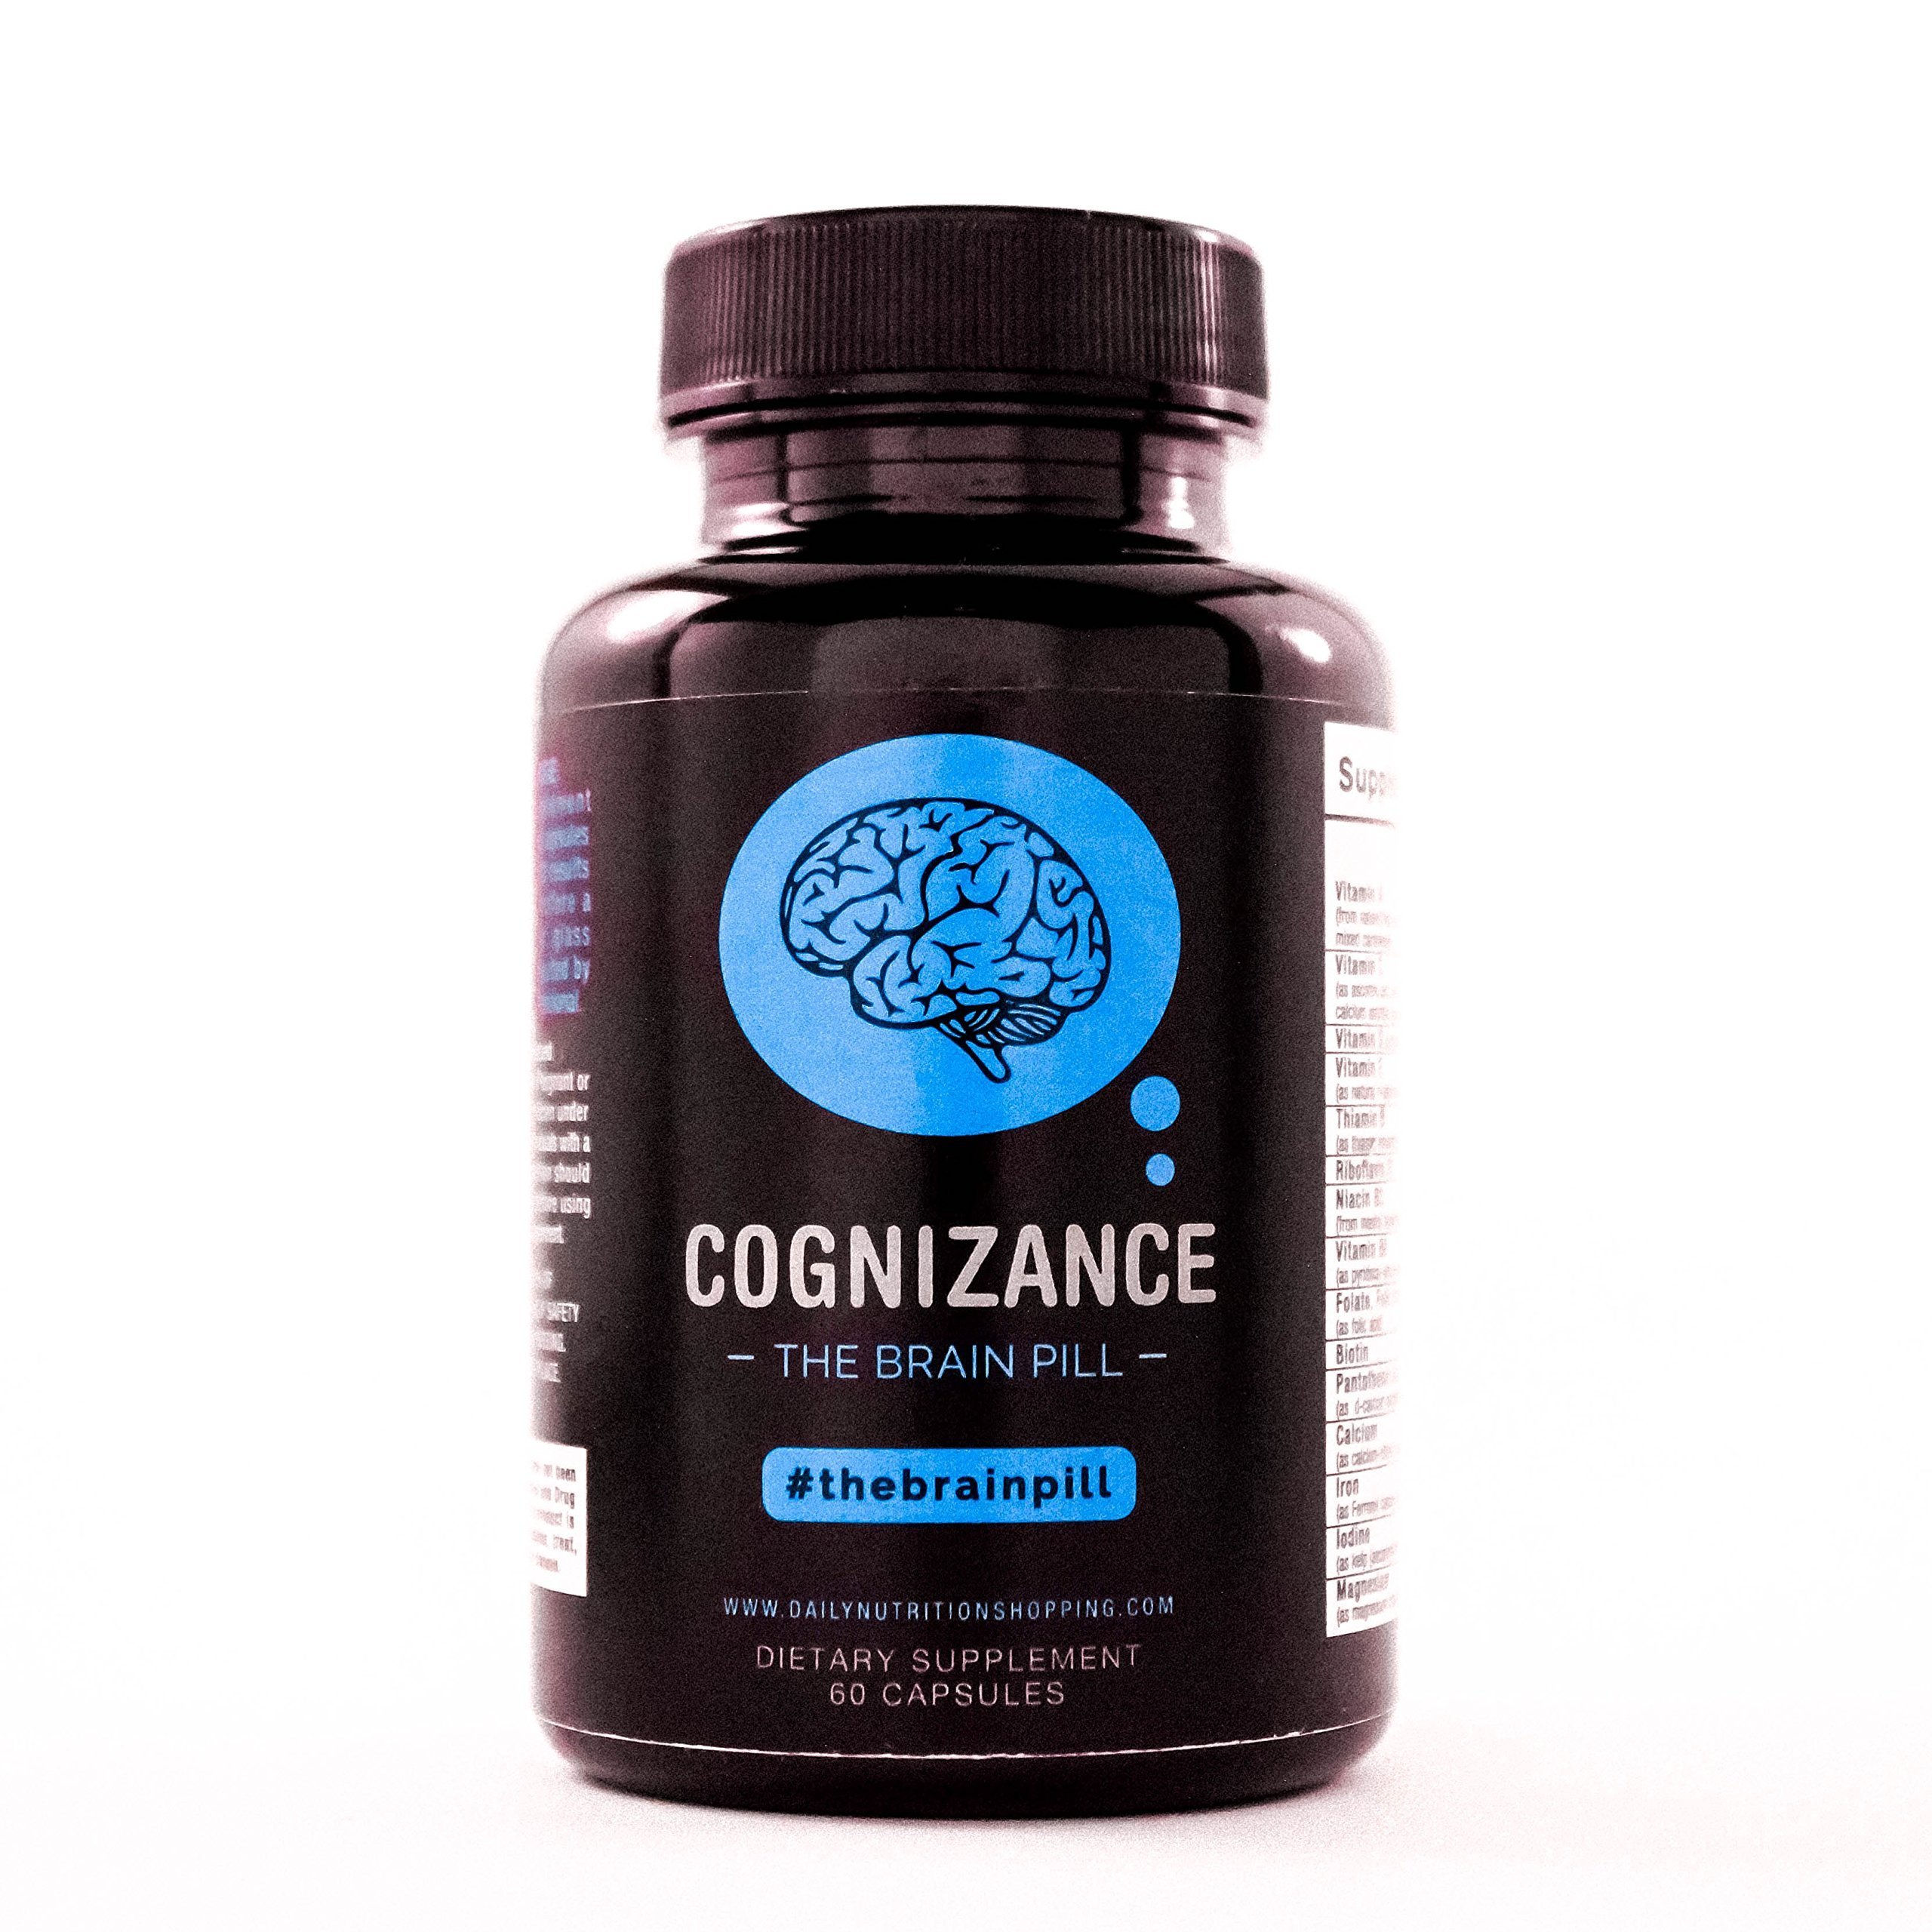 Cognizance The Brain Pill: 60 Capsules - Natural Brain Function Support for Memory, Focus, Clarity, Mental Performance and More